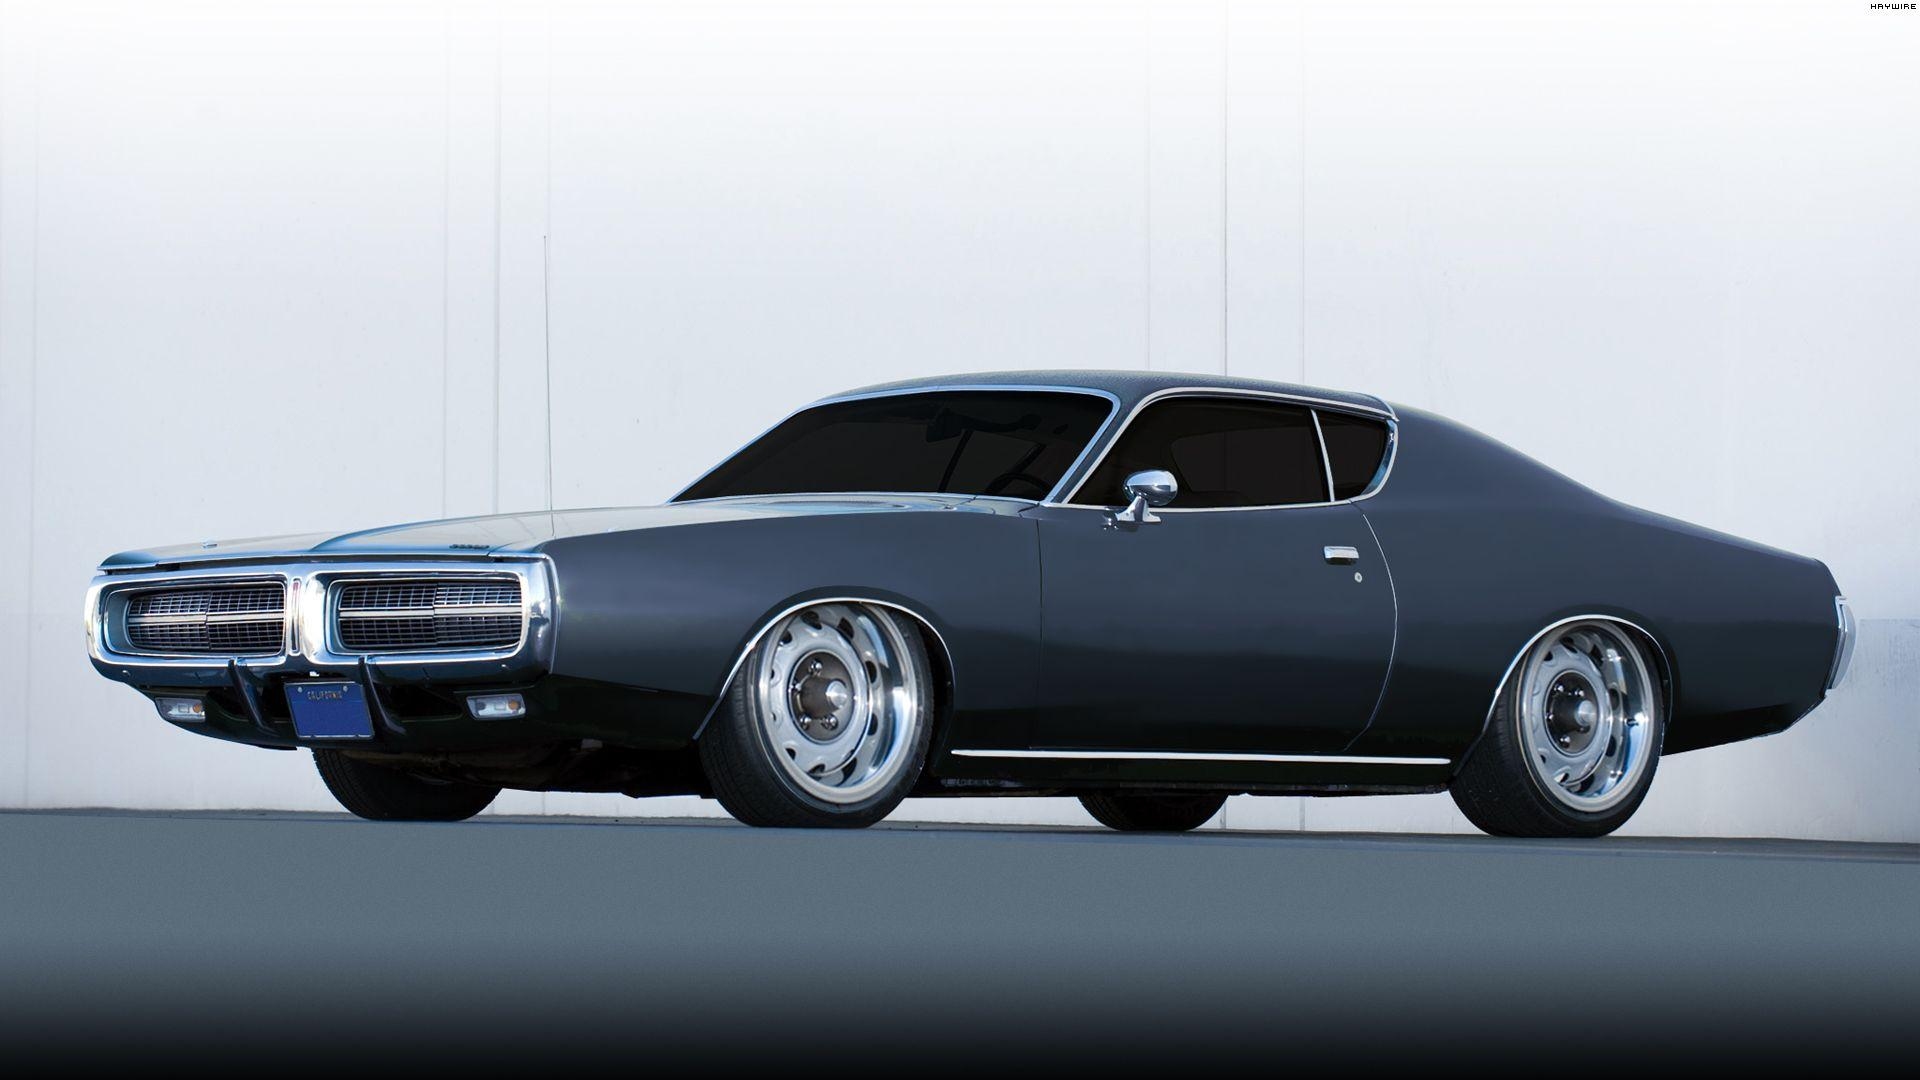 1968 Dodge Charger Wallpaper Cars 1987 Dodge Challenger Wallpapers Wallpaper Cave